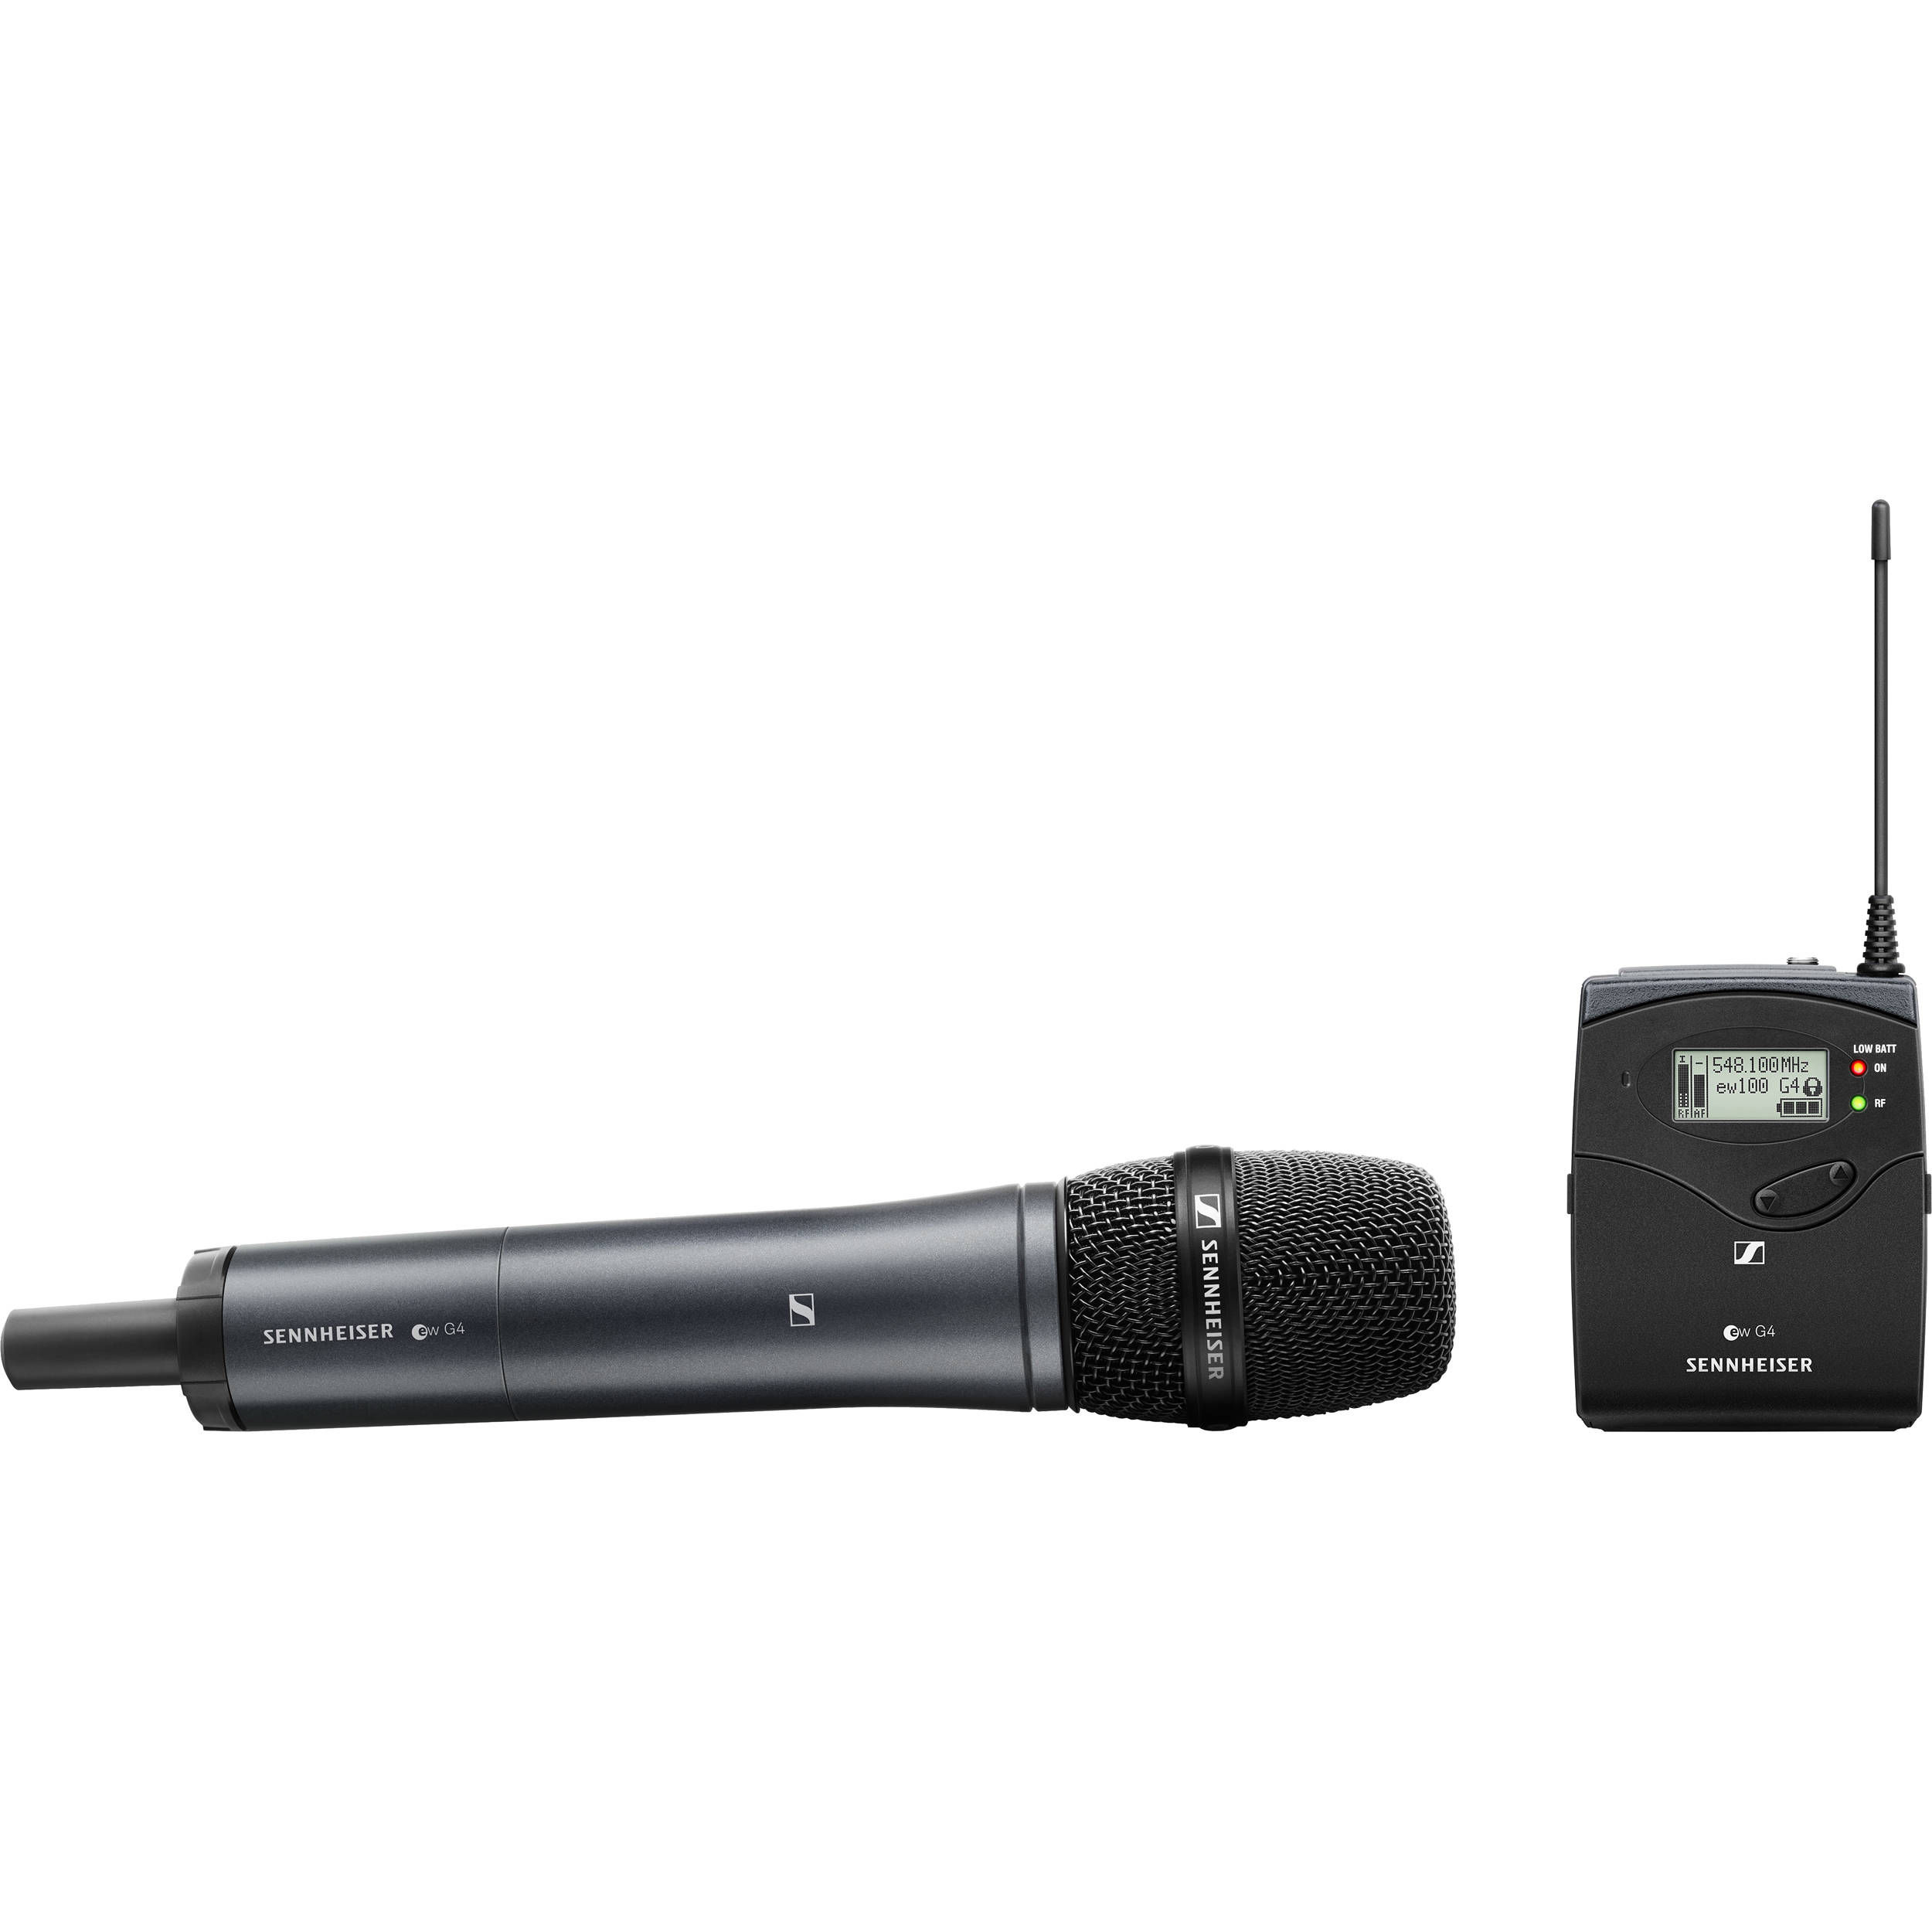 Sennheiser EW 135P G4-B Camera-Mount Wireless Microphone System (626 - 668 MHz)